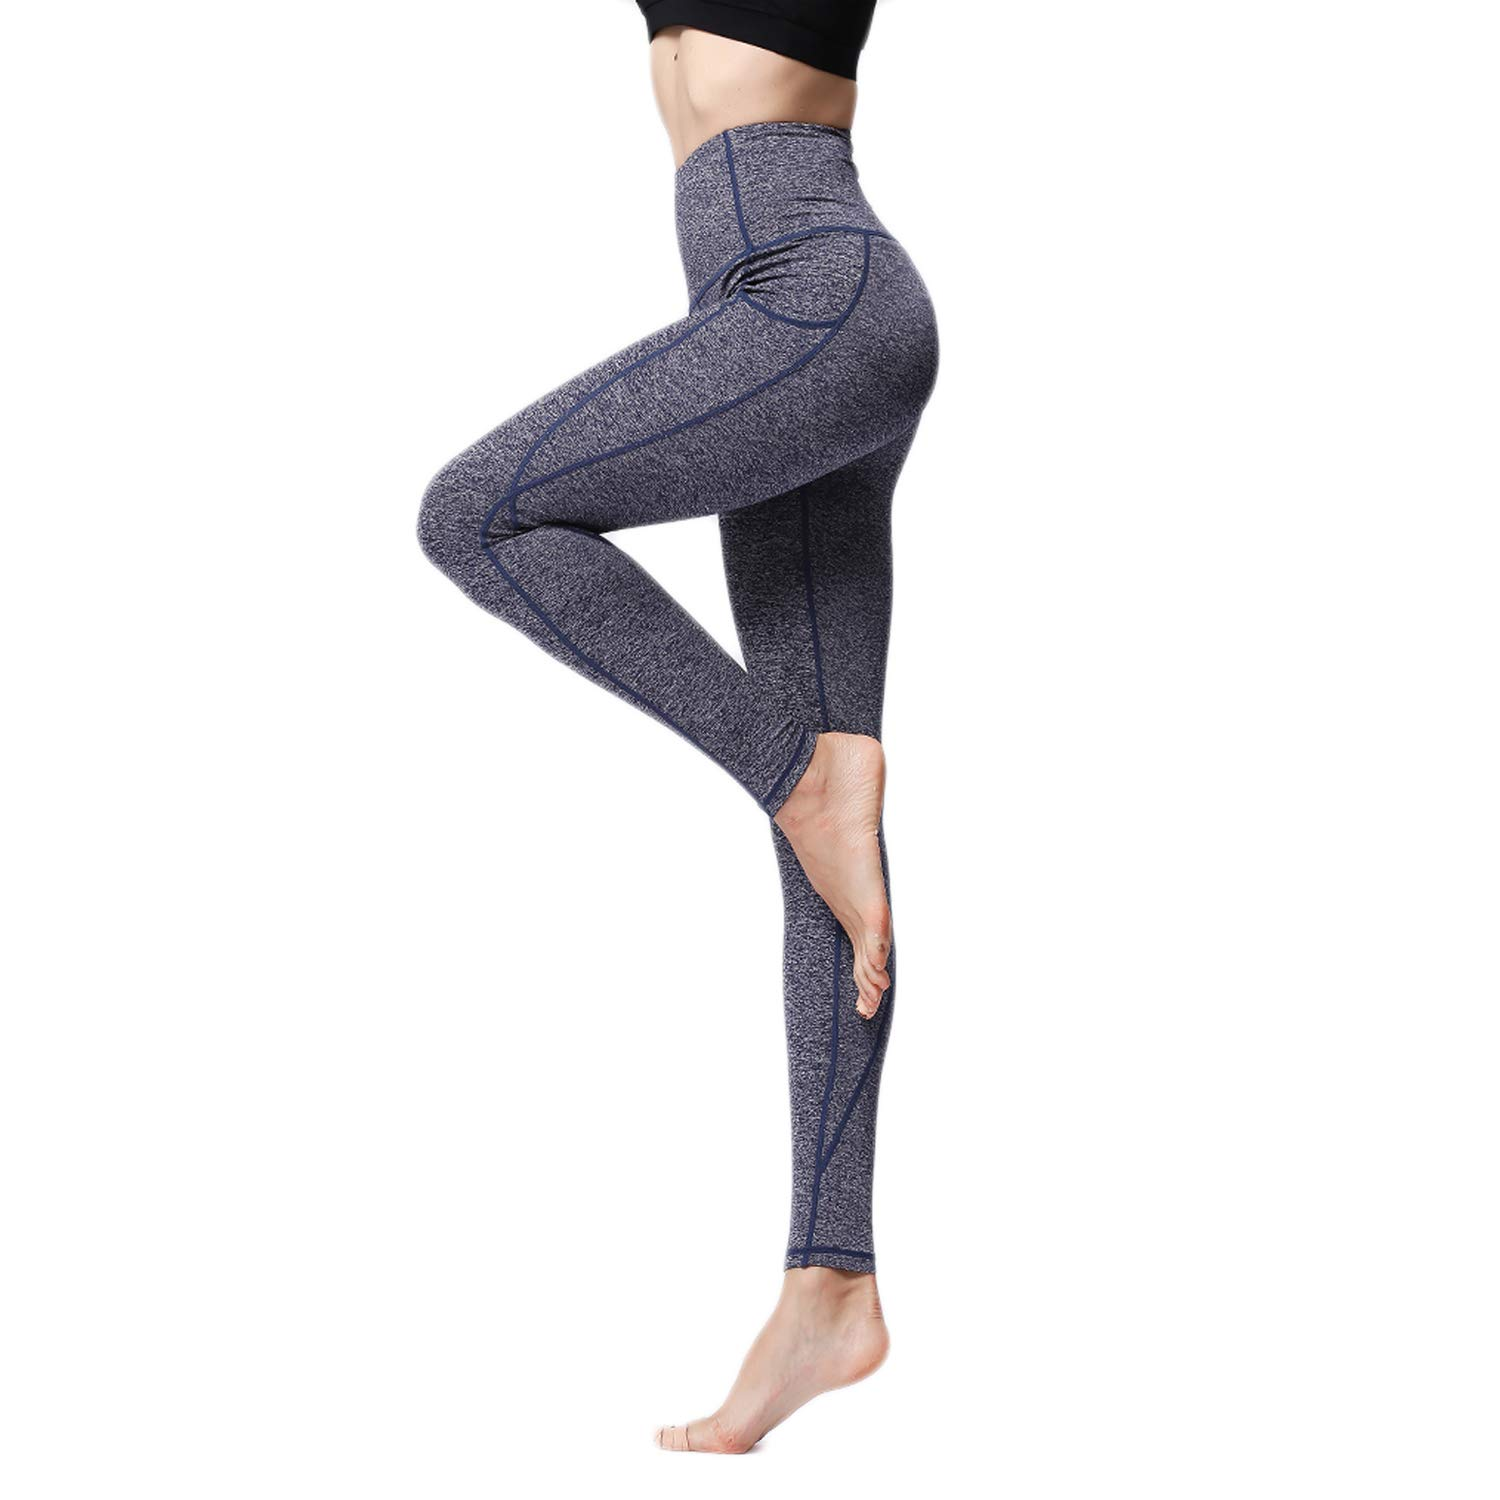 blueee S US 02 MTSCE High Waist Women Yoga Pants with Pocket Soft Lightweight Leggings Tummy Control Compression Pants(SXL)